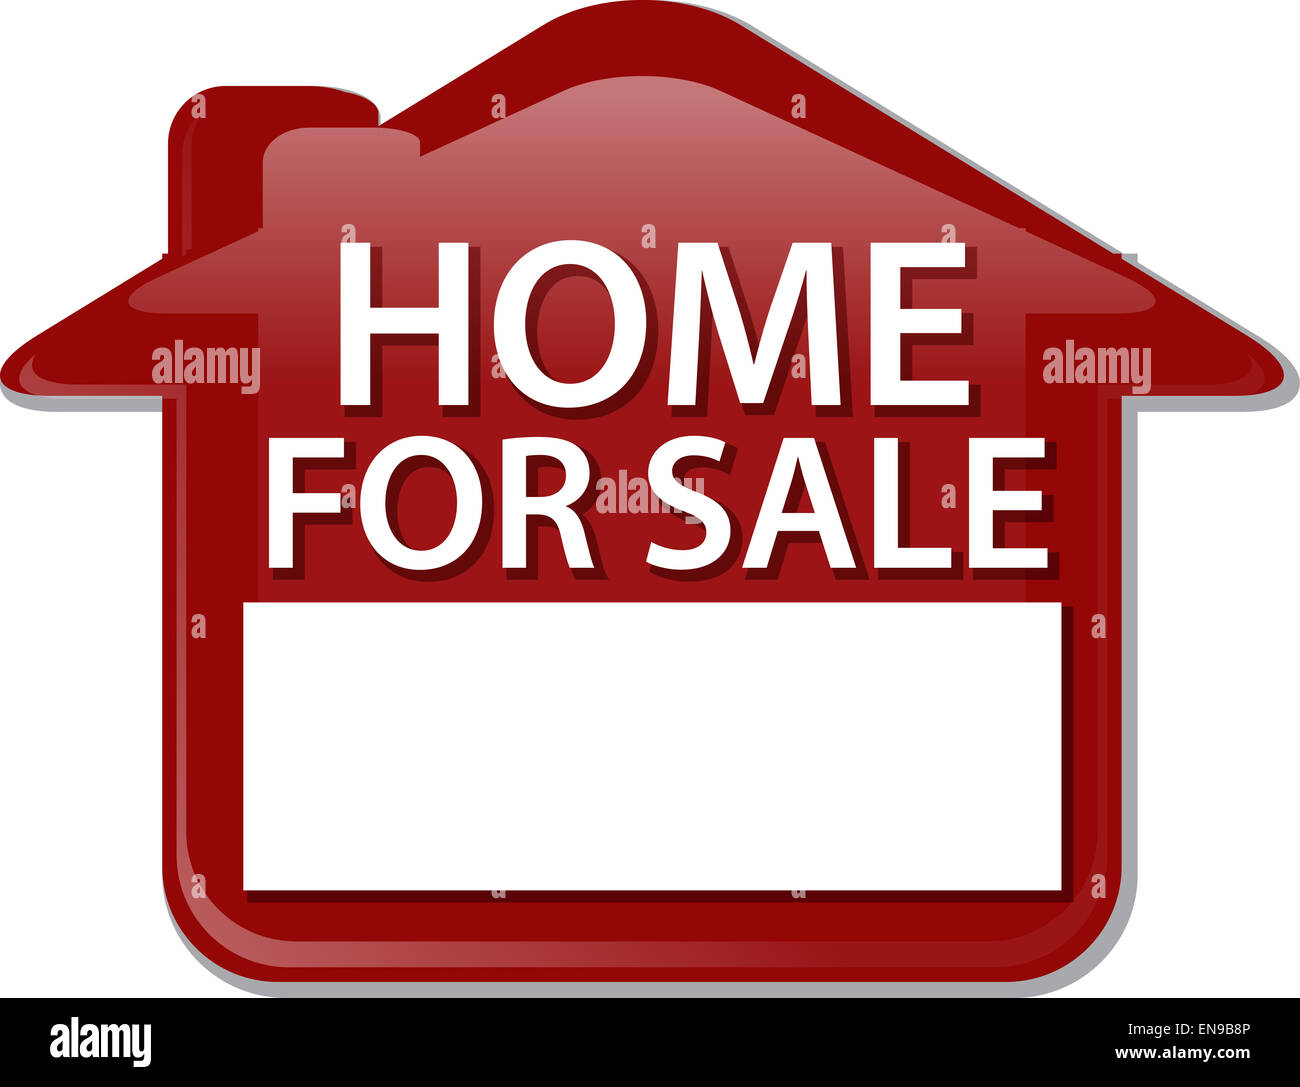 illustration concept clipart home for sale sign house selling stock rh alamy com clipart for sale salesman clipart